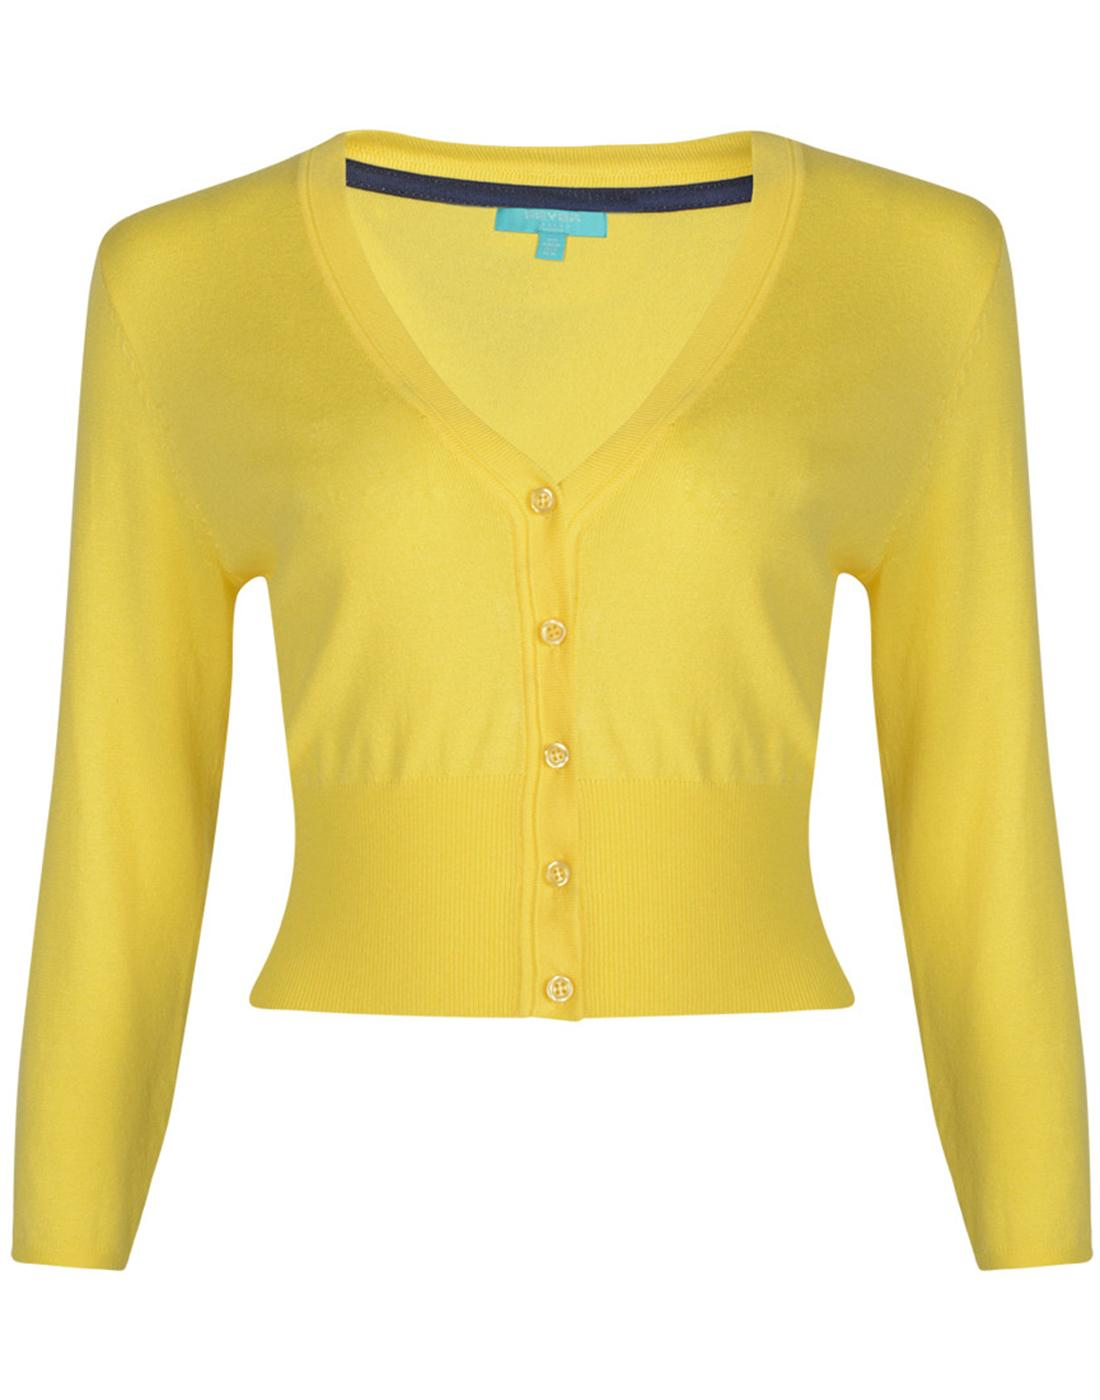 Mariel FEVER Retro Vintage Cropped Cardigan Yellow